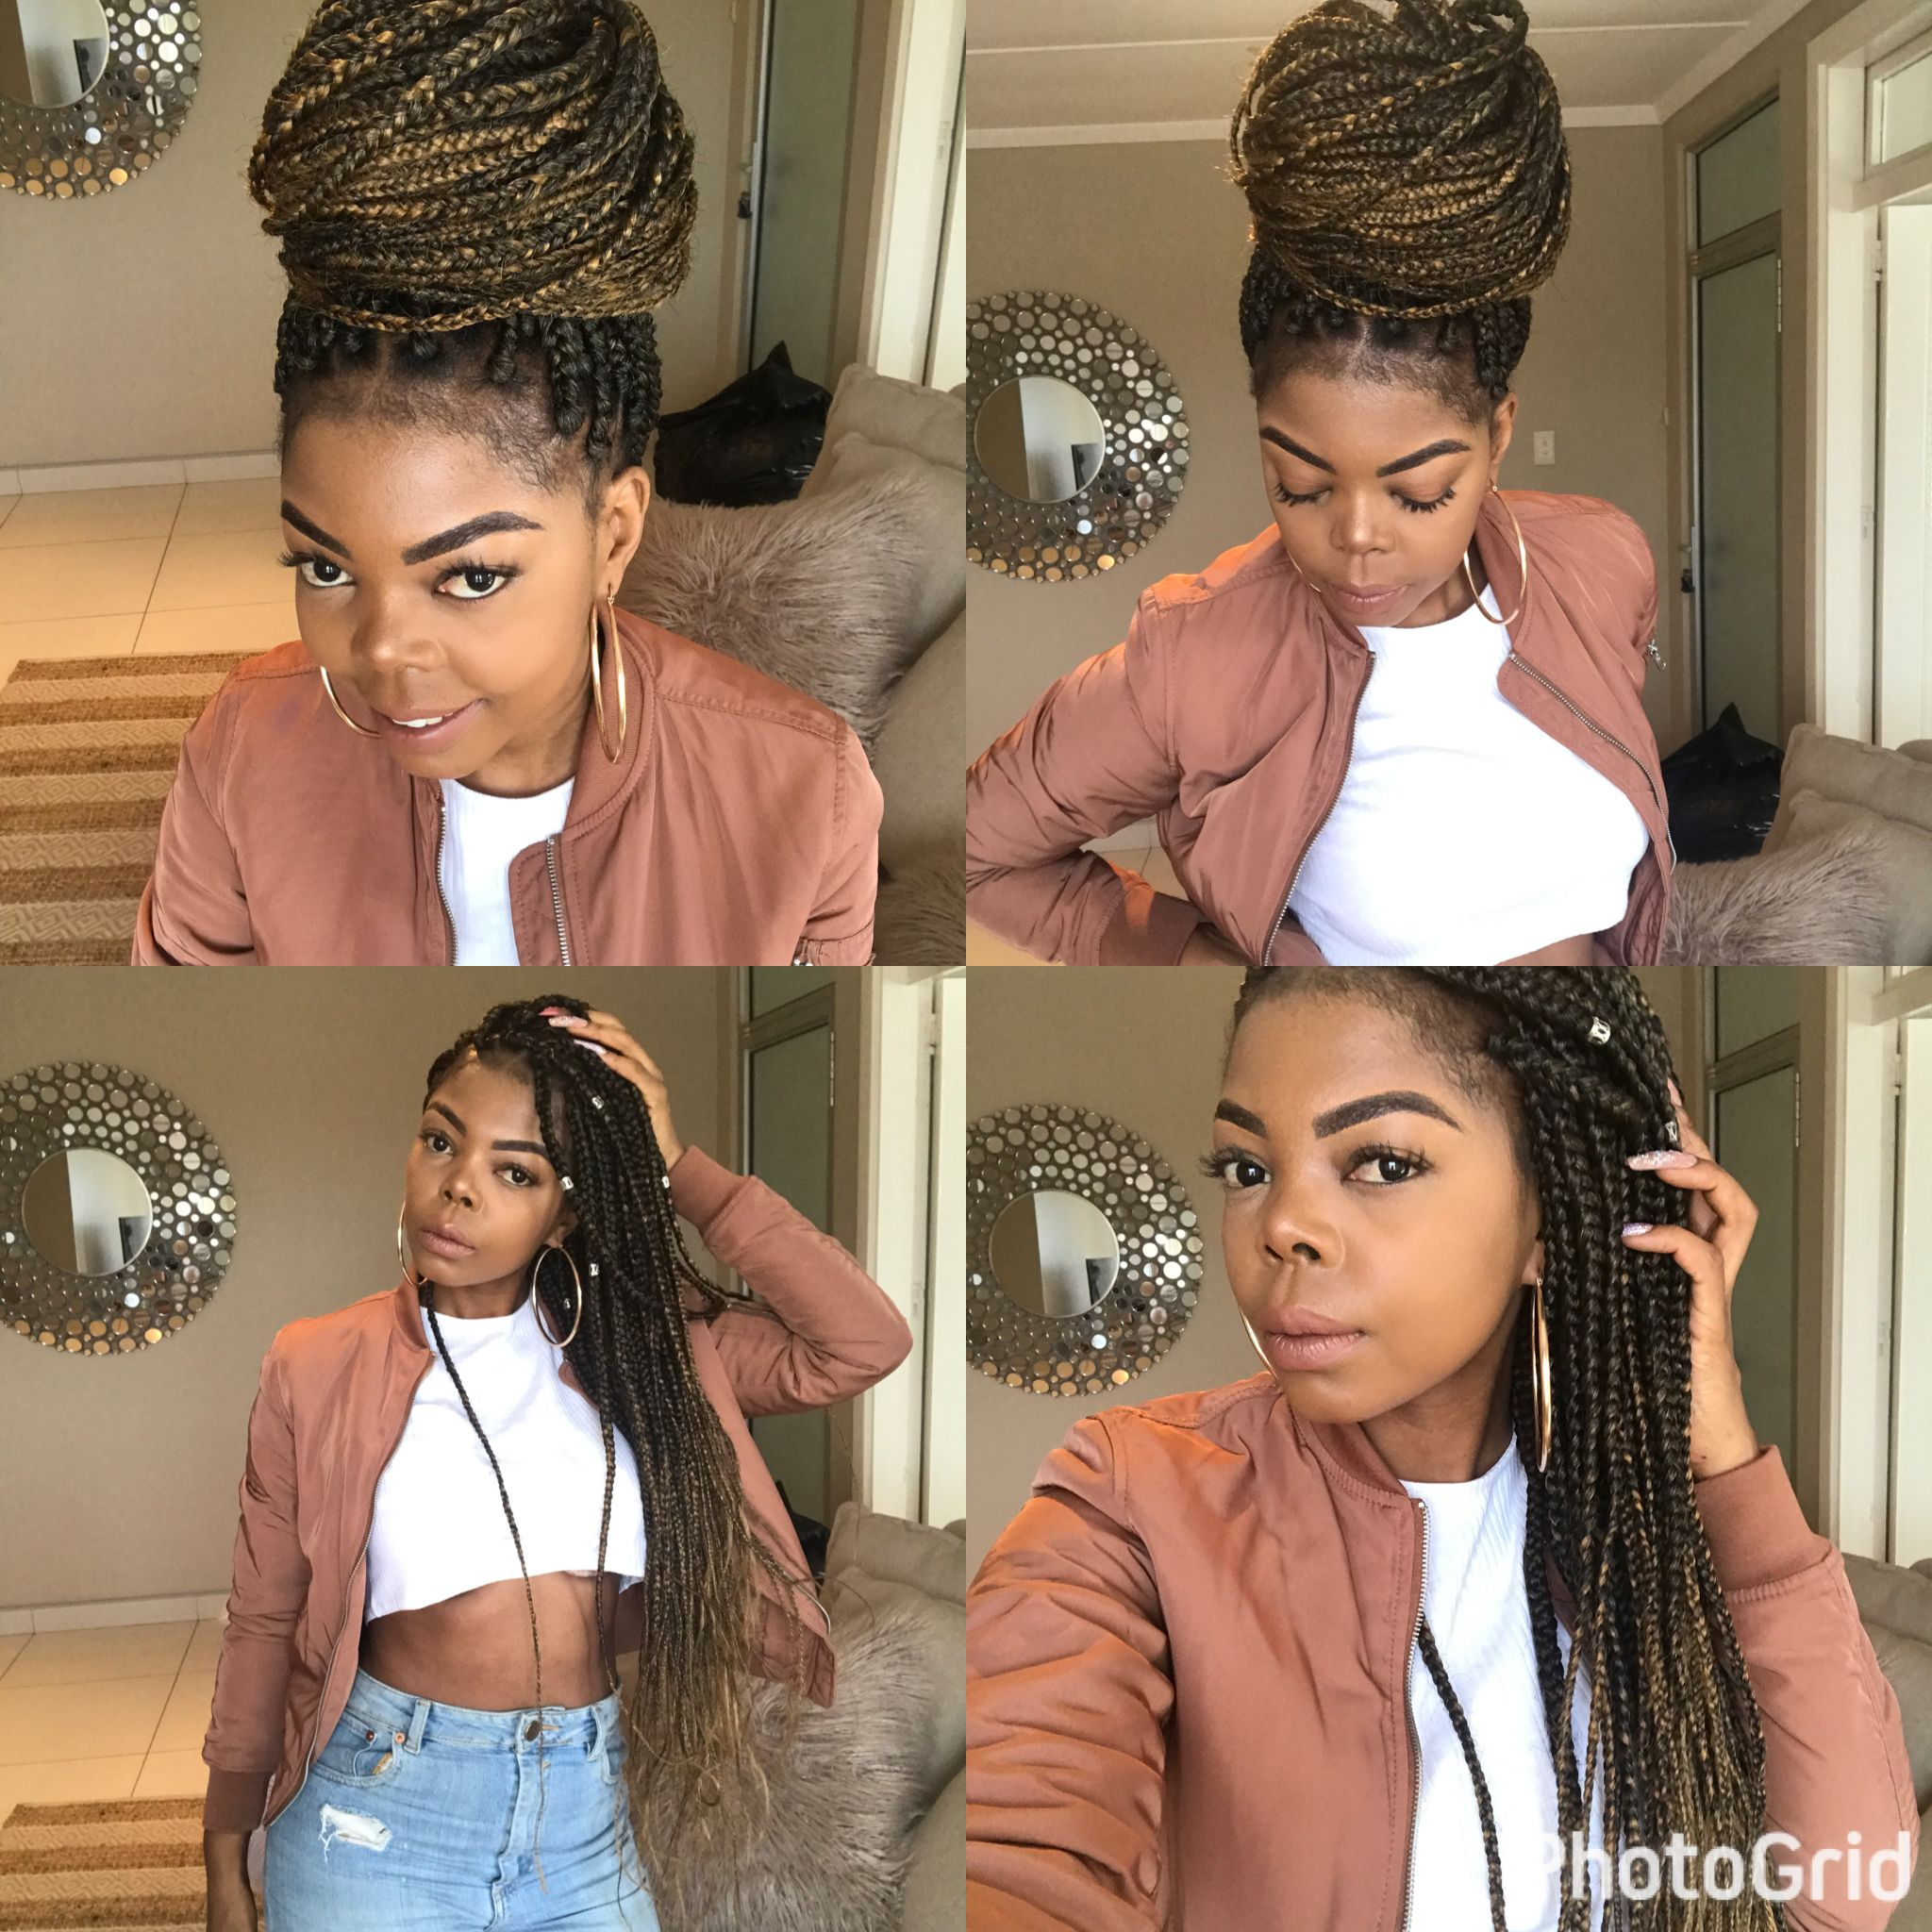 Fancyclaws Beautiful Salon 15 Hurst Durban South Africa Braided Hairstyles For Black Women Braided Hairstyles Black Women Hairstyles